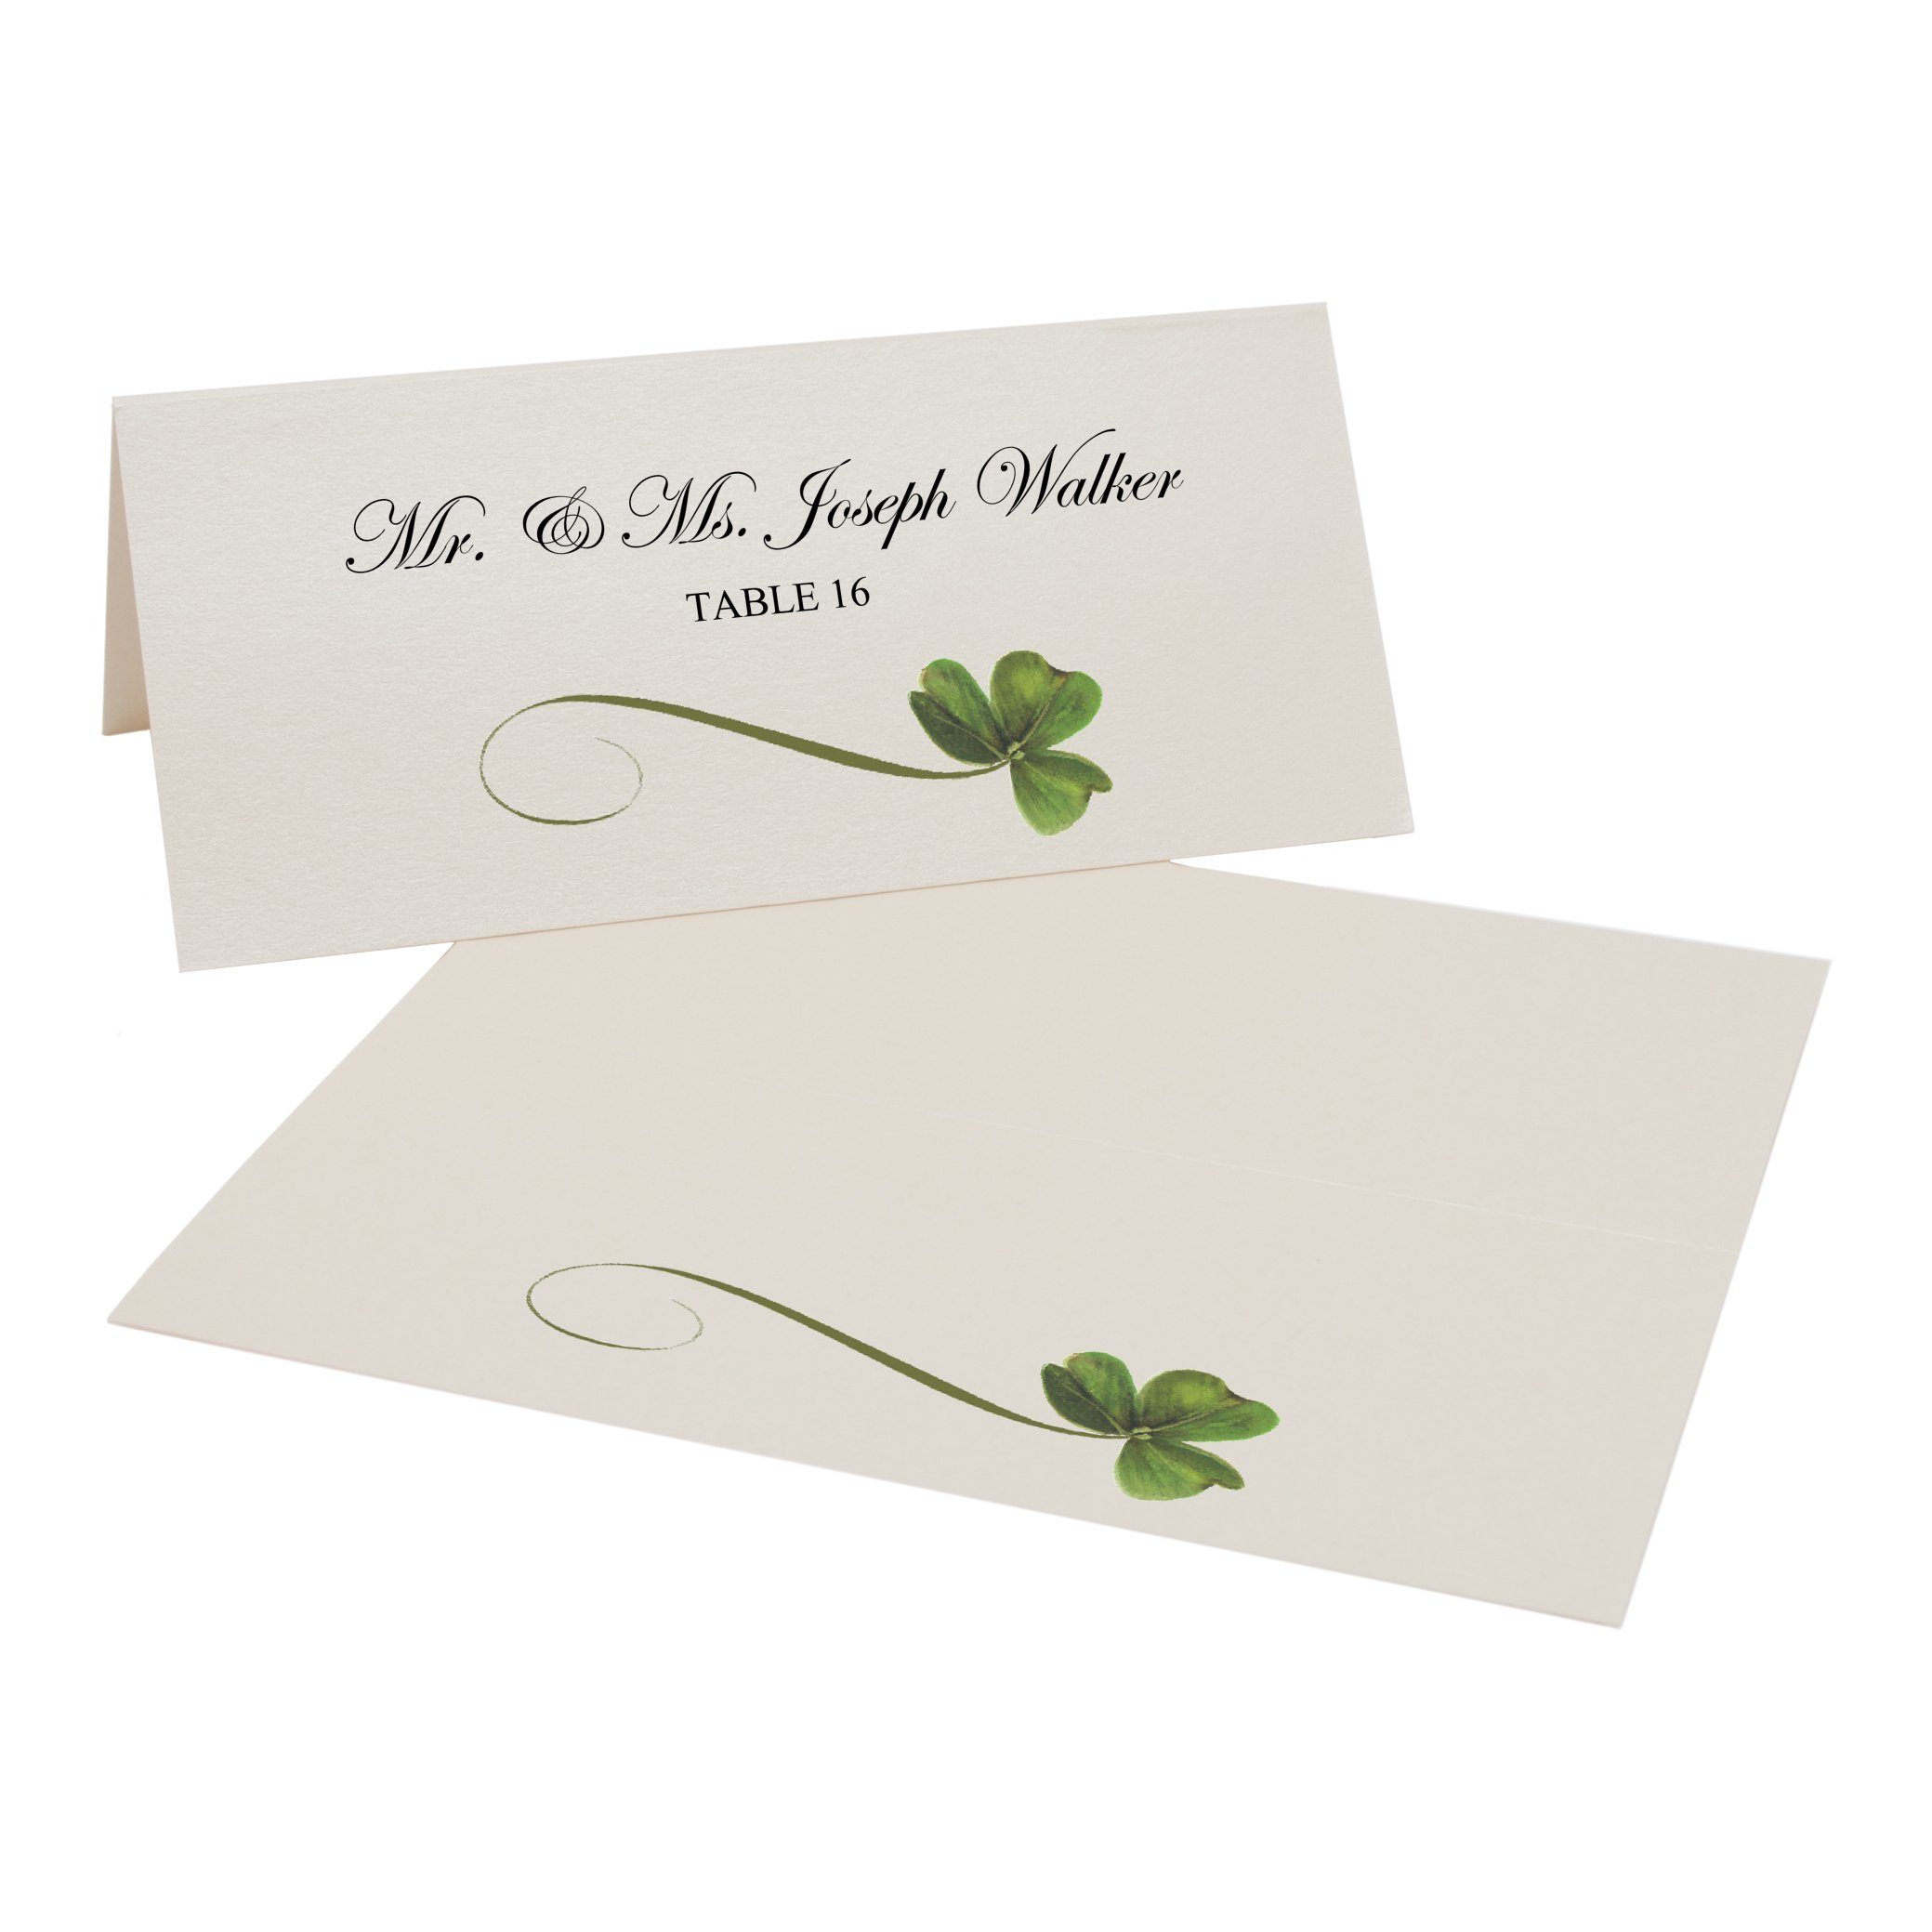 Shamrock Easy Print Place Cards, Champagne, Set of 450 (113 Sheets) by Documents and Designs